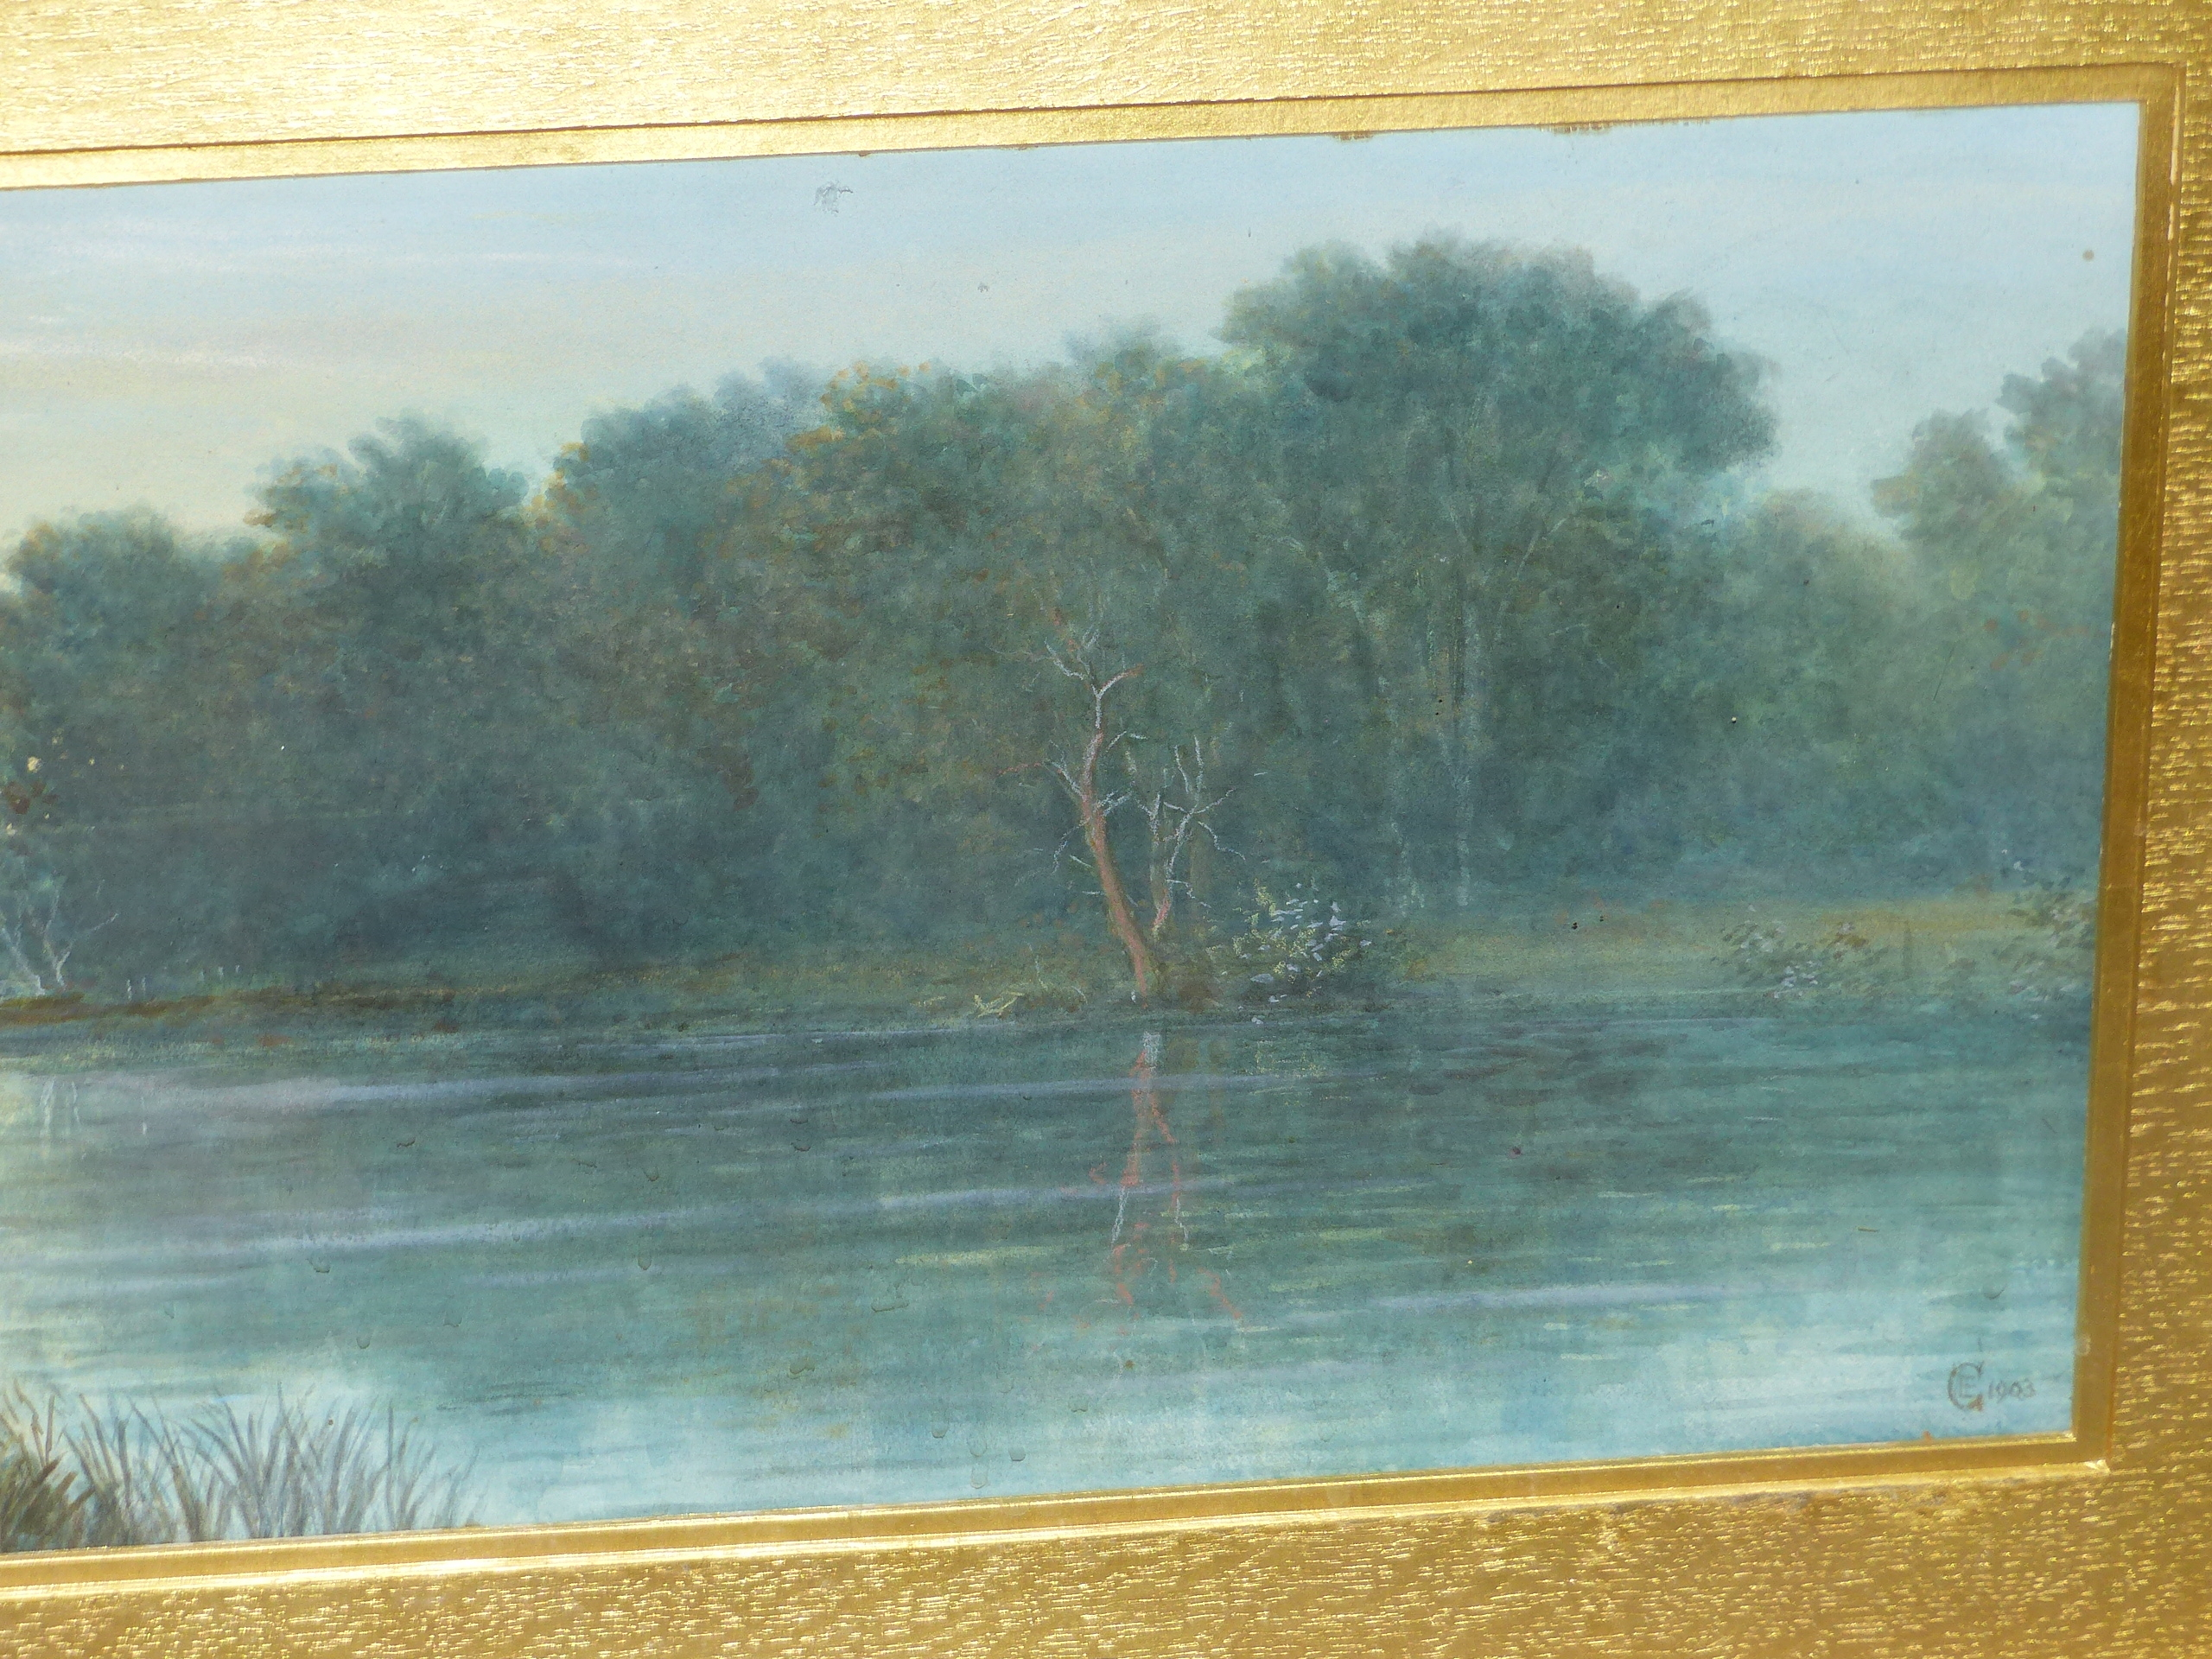 19th/20th C. ENGLISH SCHOOL HOMEWARD BOUND, SIGNED INDISTINCTLY WATERCOLOUR. 28 x 46 cms TOGETHER - Image 9 of 15